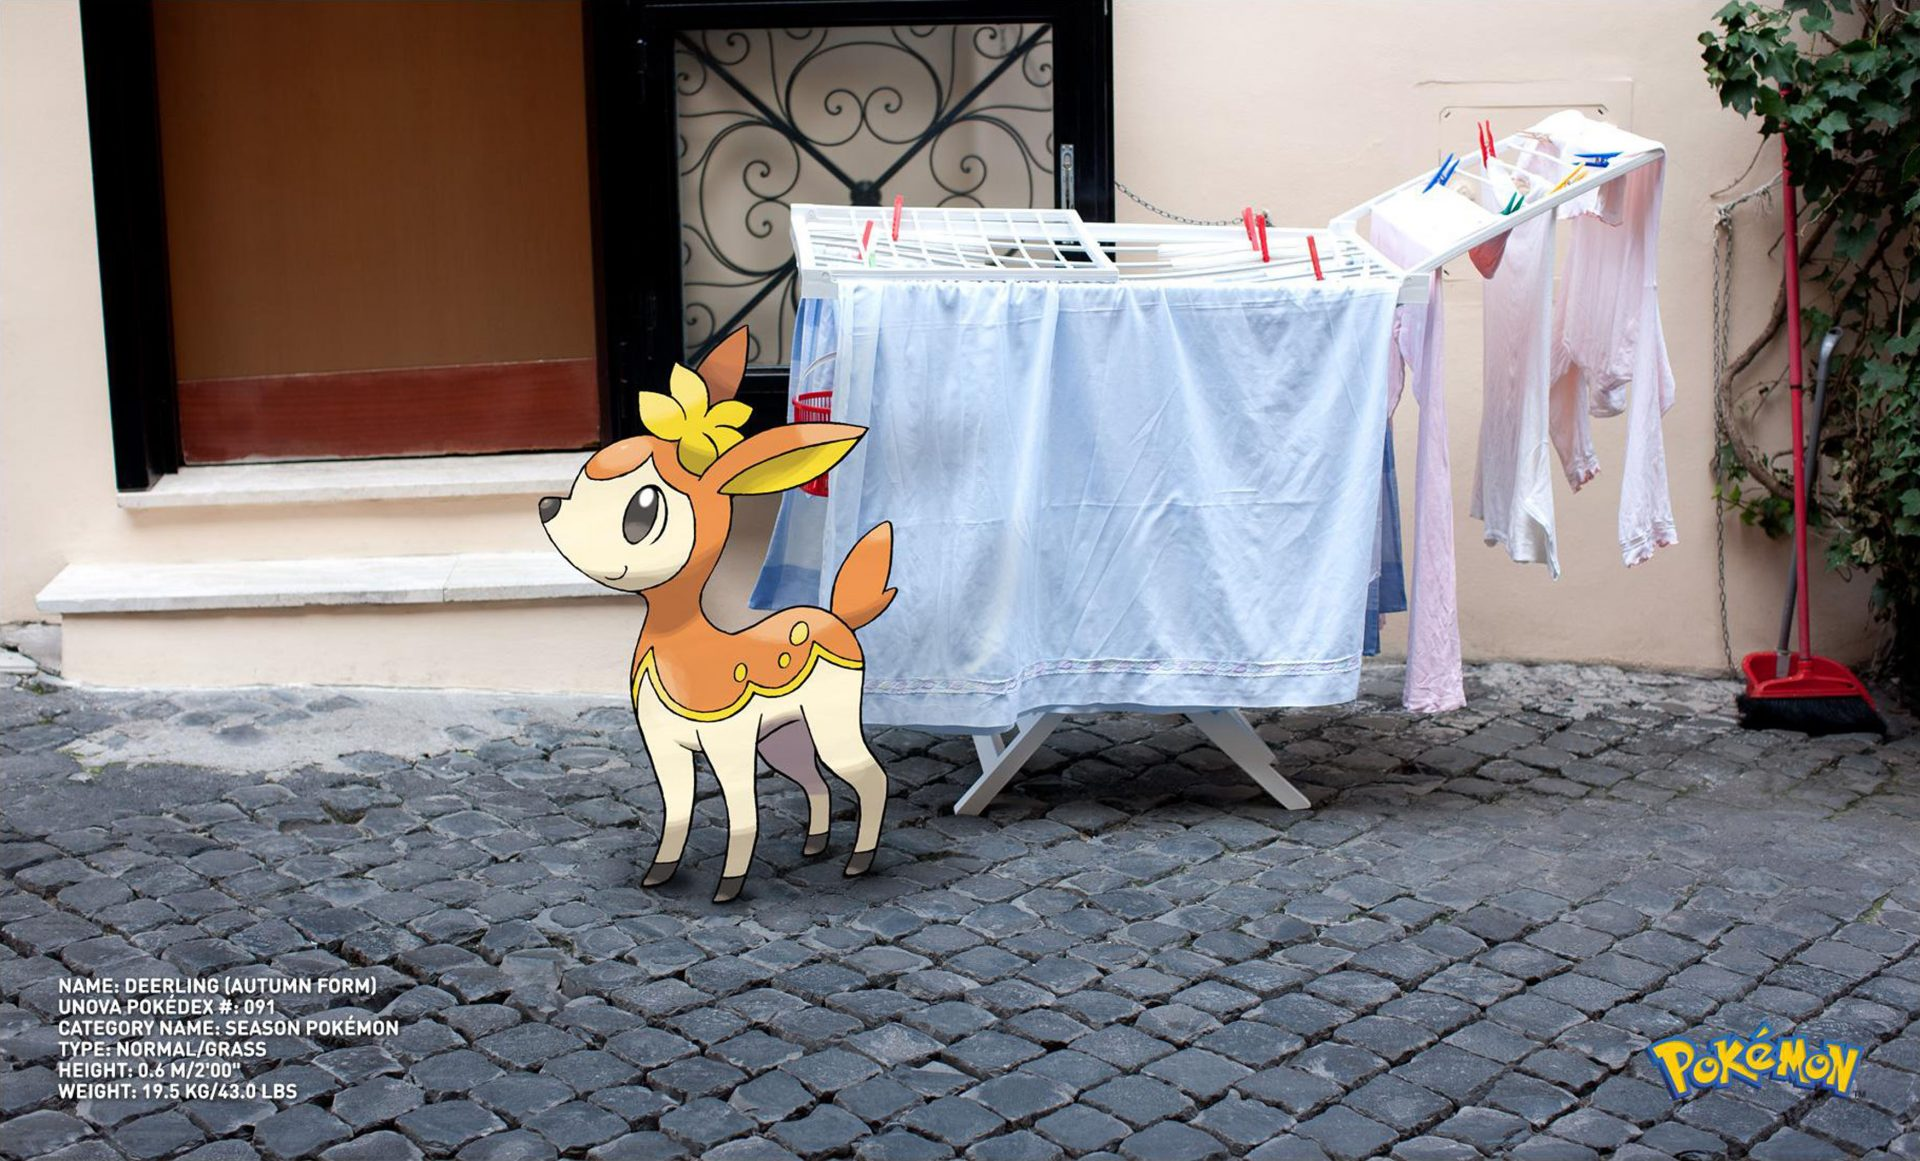 Season Pokemon Go deer with washing stand drying Deerling (Autumn Form) Dentsu London Italy – Shaw and Shaw Photography photographer